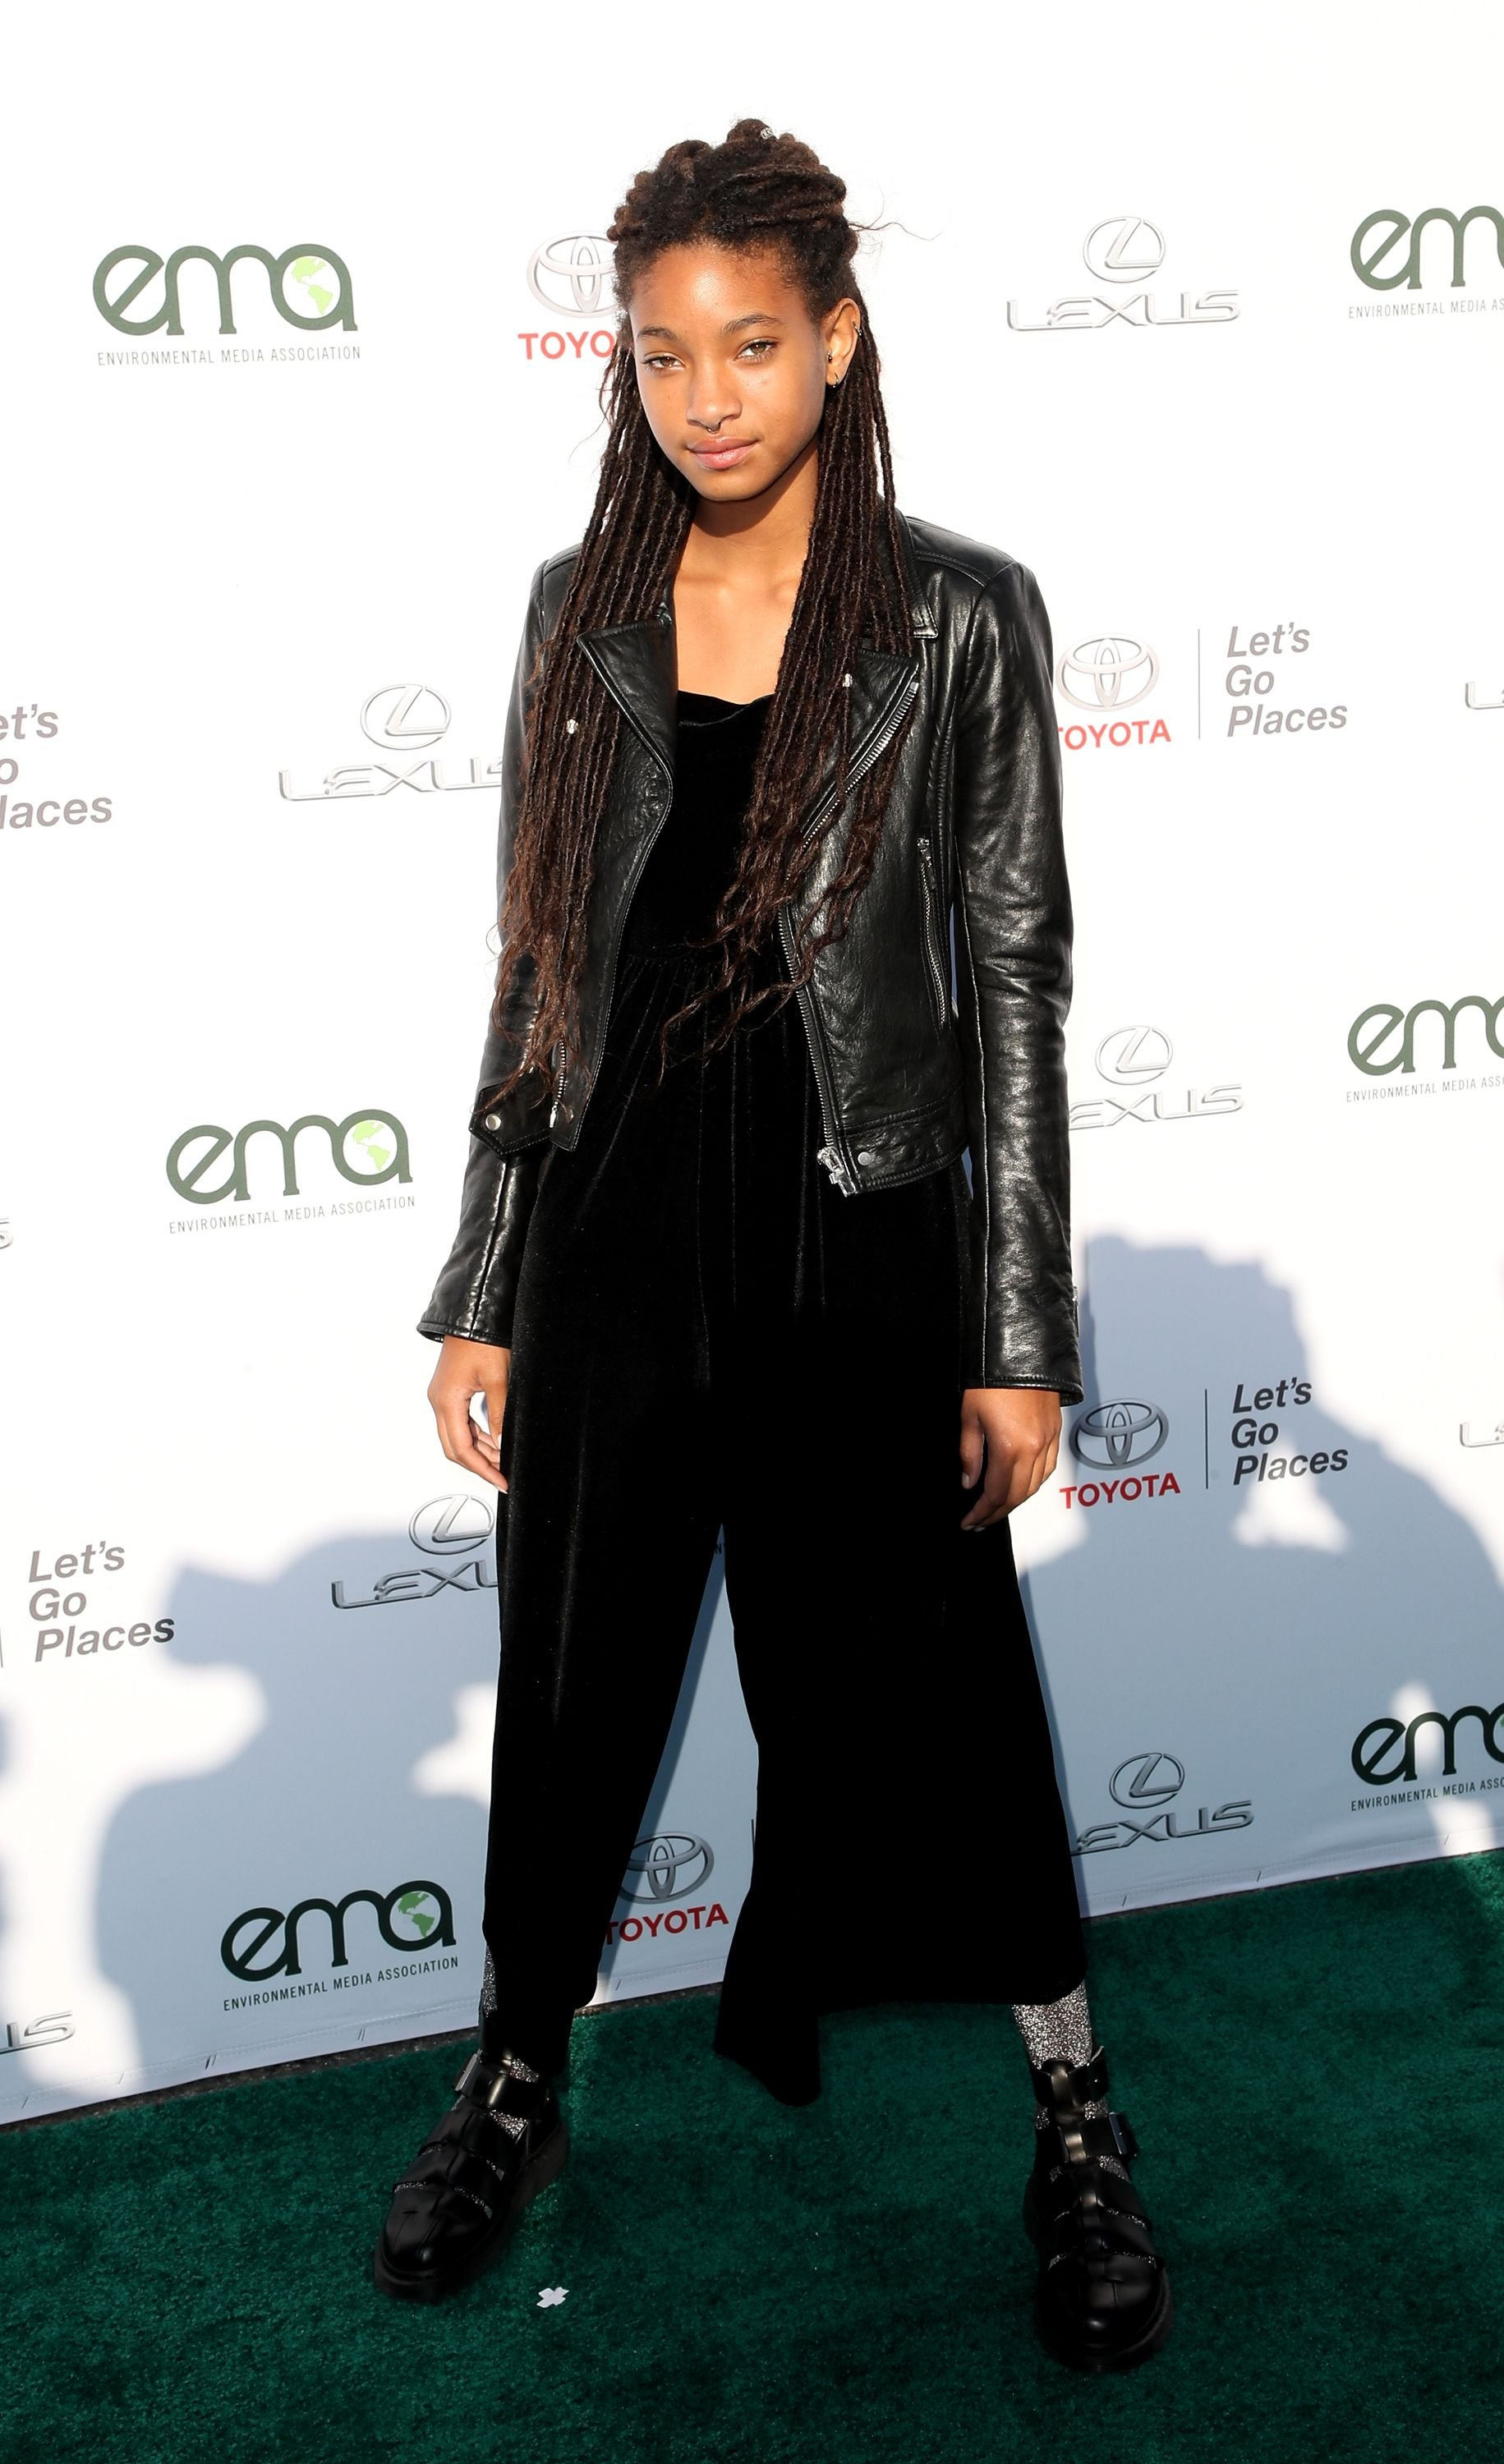 Singer Willow Smith attends the 27th Annual EMA Awards at Barker Hangar on September 23, 2017 | Photo: Getty Images